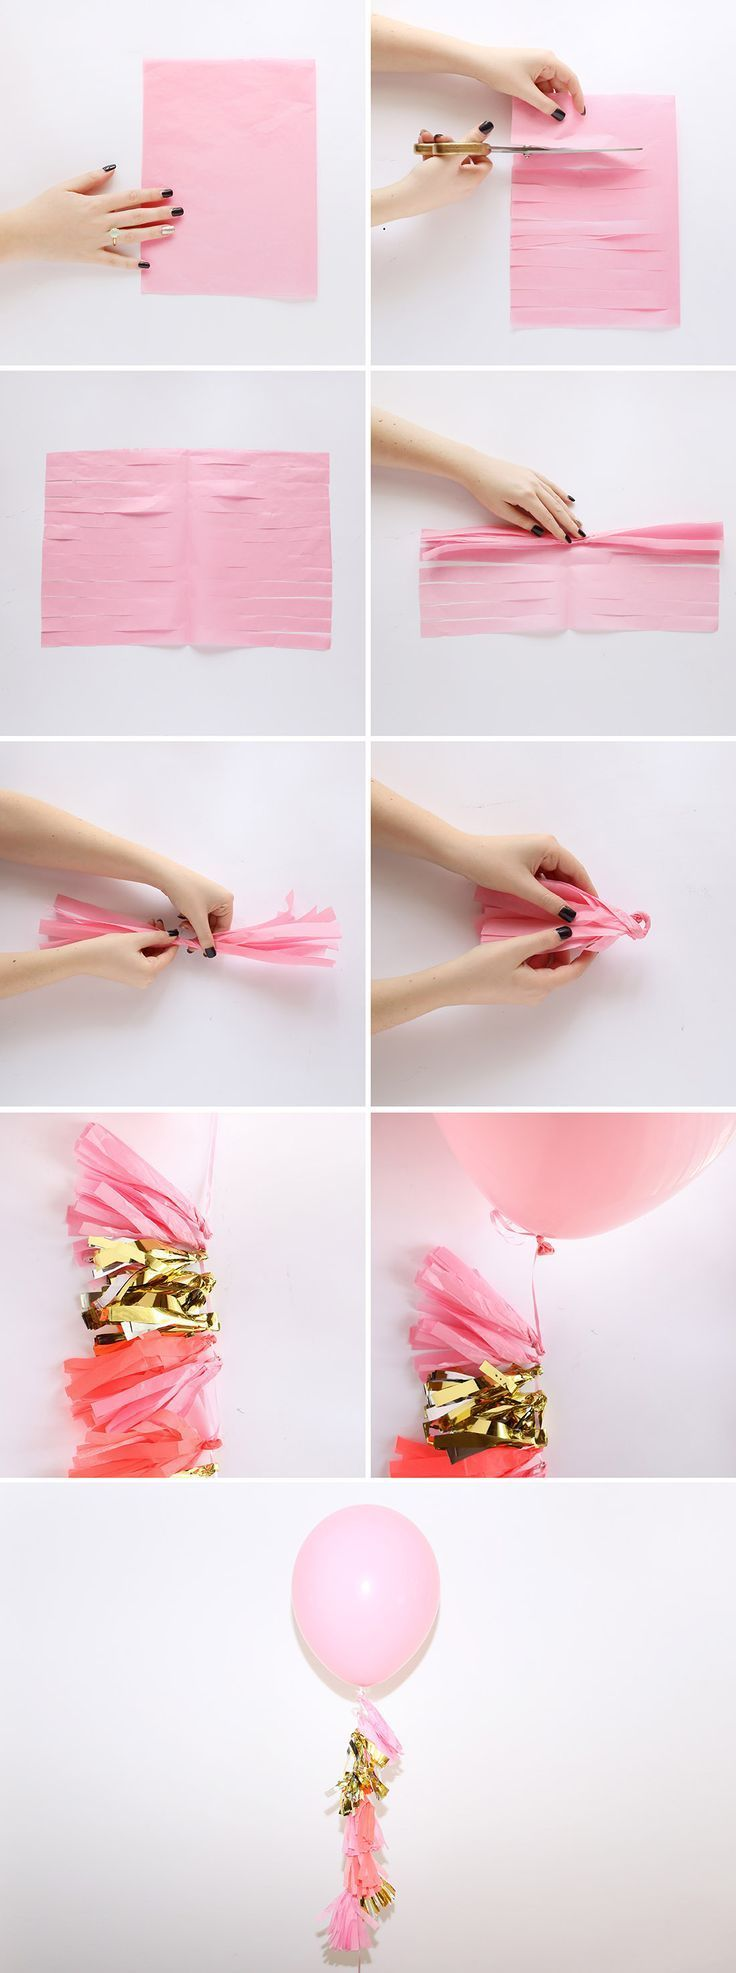 How to make tassels for your balloons. (Landing page is in Spanish, but the images speak for themselves!)